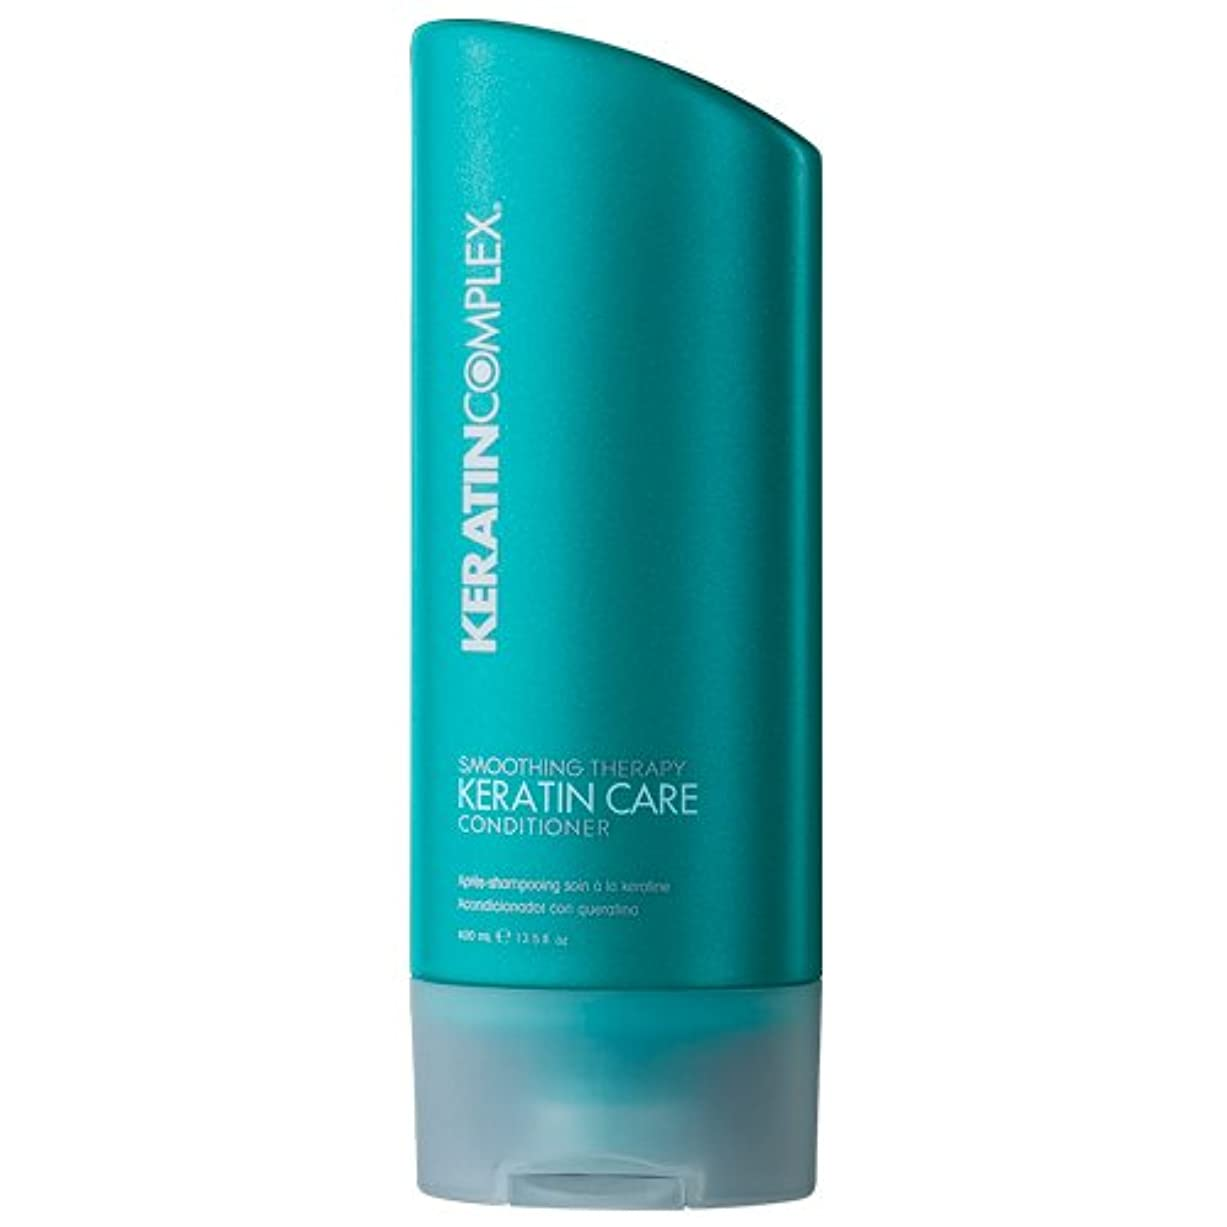 Smoothing Therapy Keratin Care Conditioner (For All Hair Types) - 400ml/13.5oz